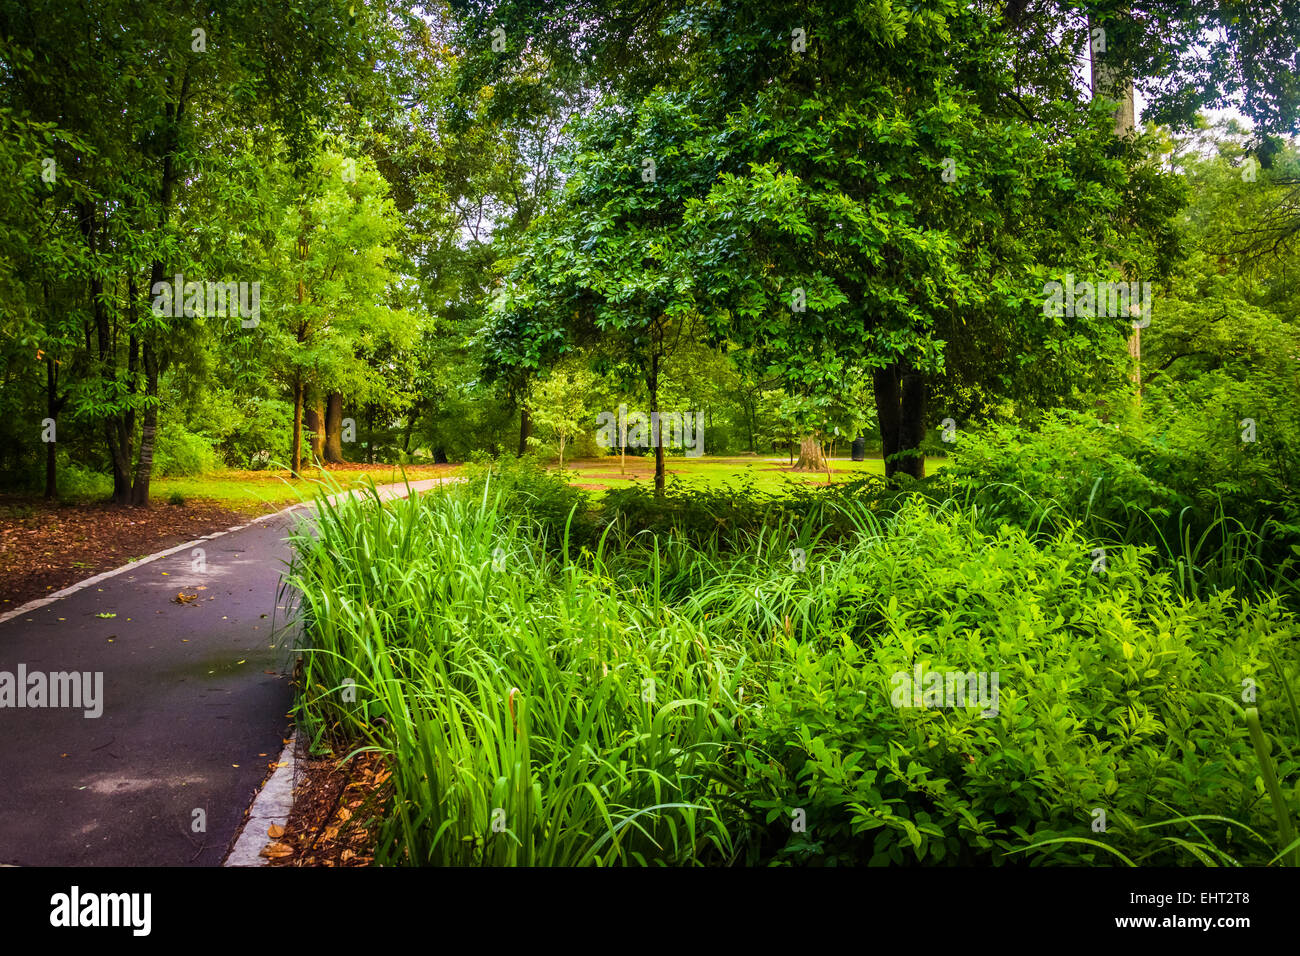 Trees and plants along a path in Piedmont Park, Atlanta, Georgia. - Stock Image